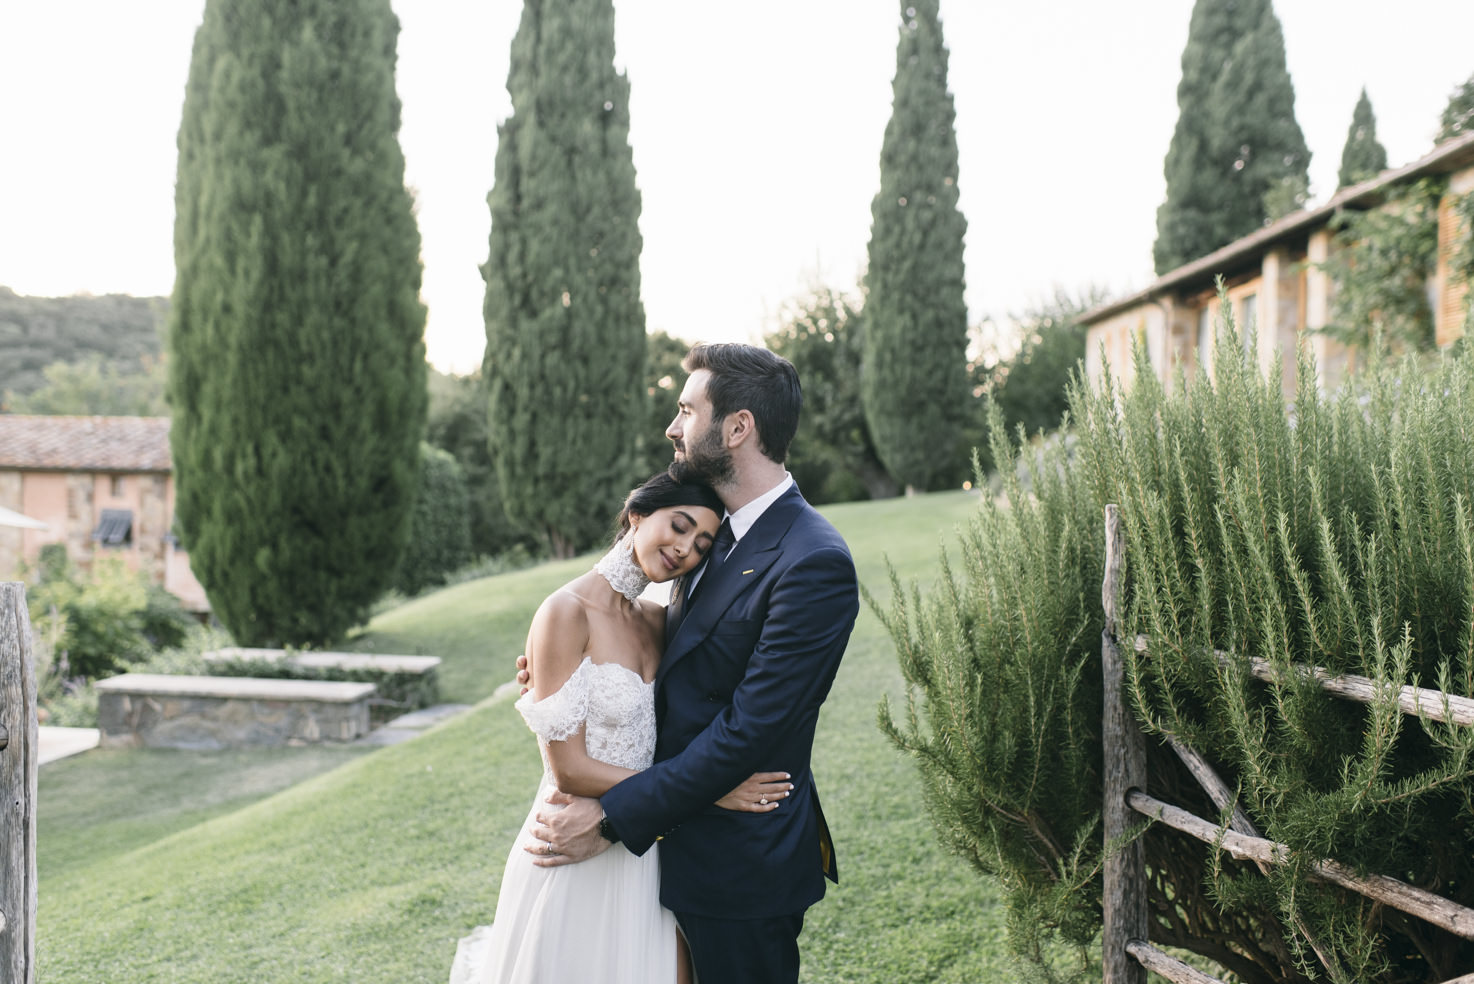 Destination wedding in the countryside of Tuscany